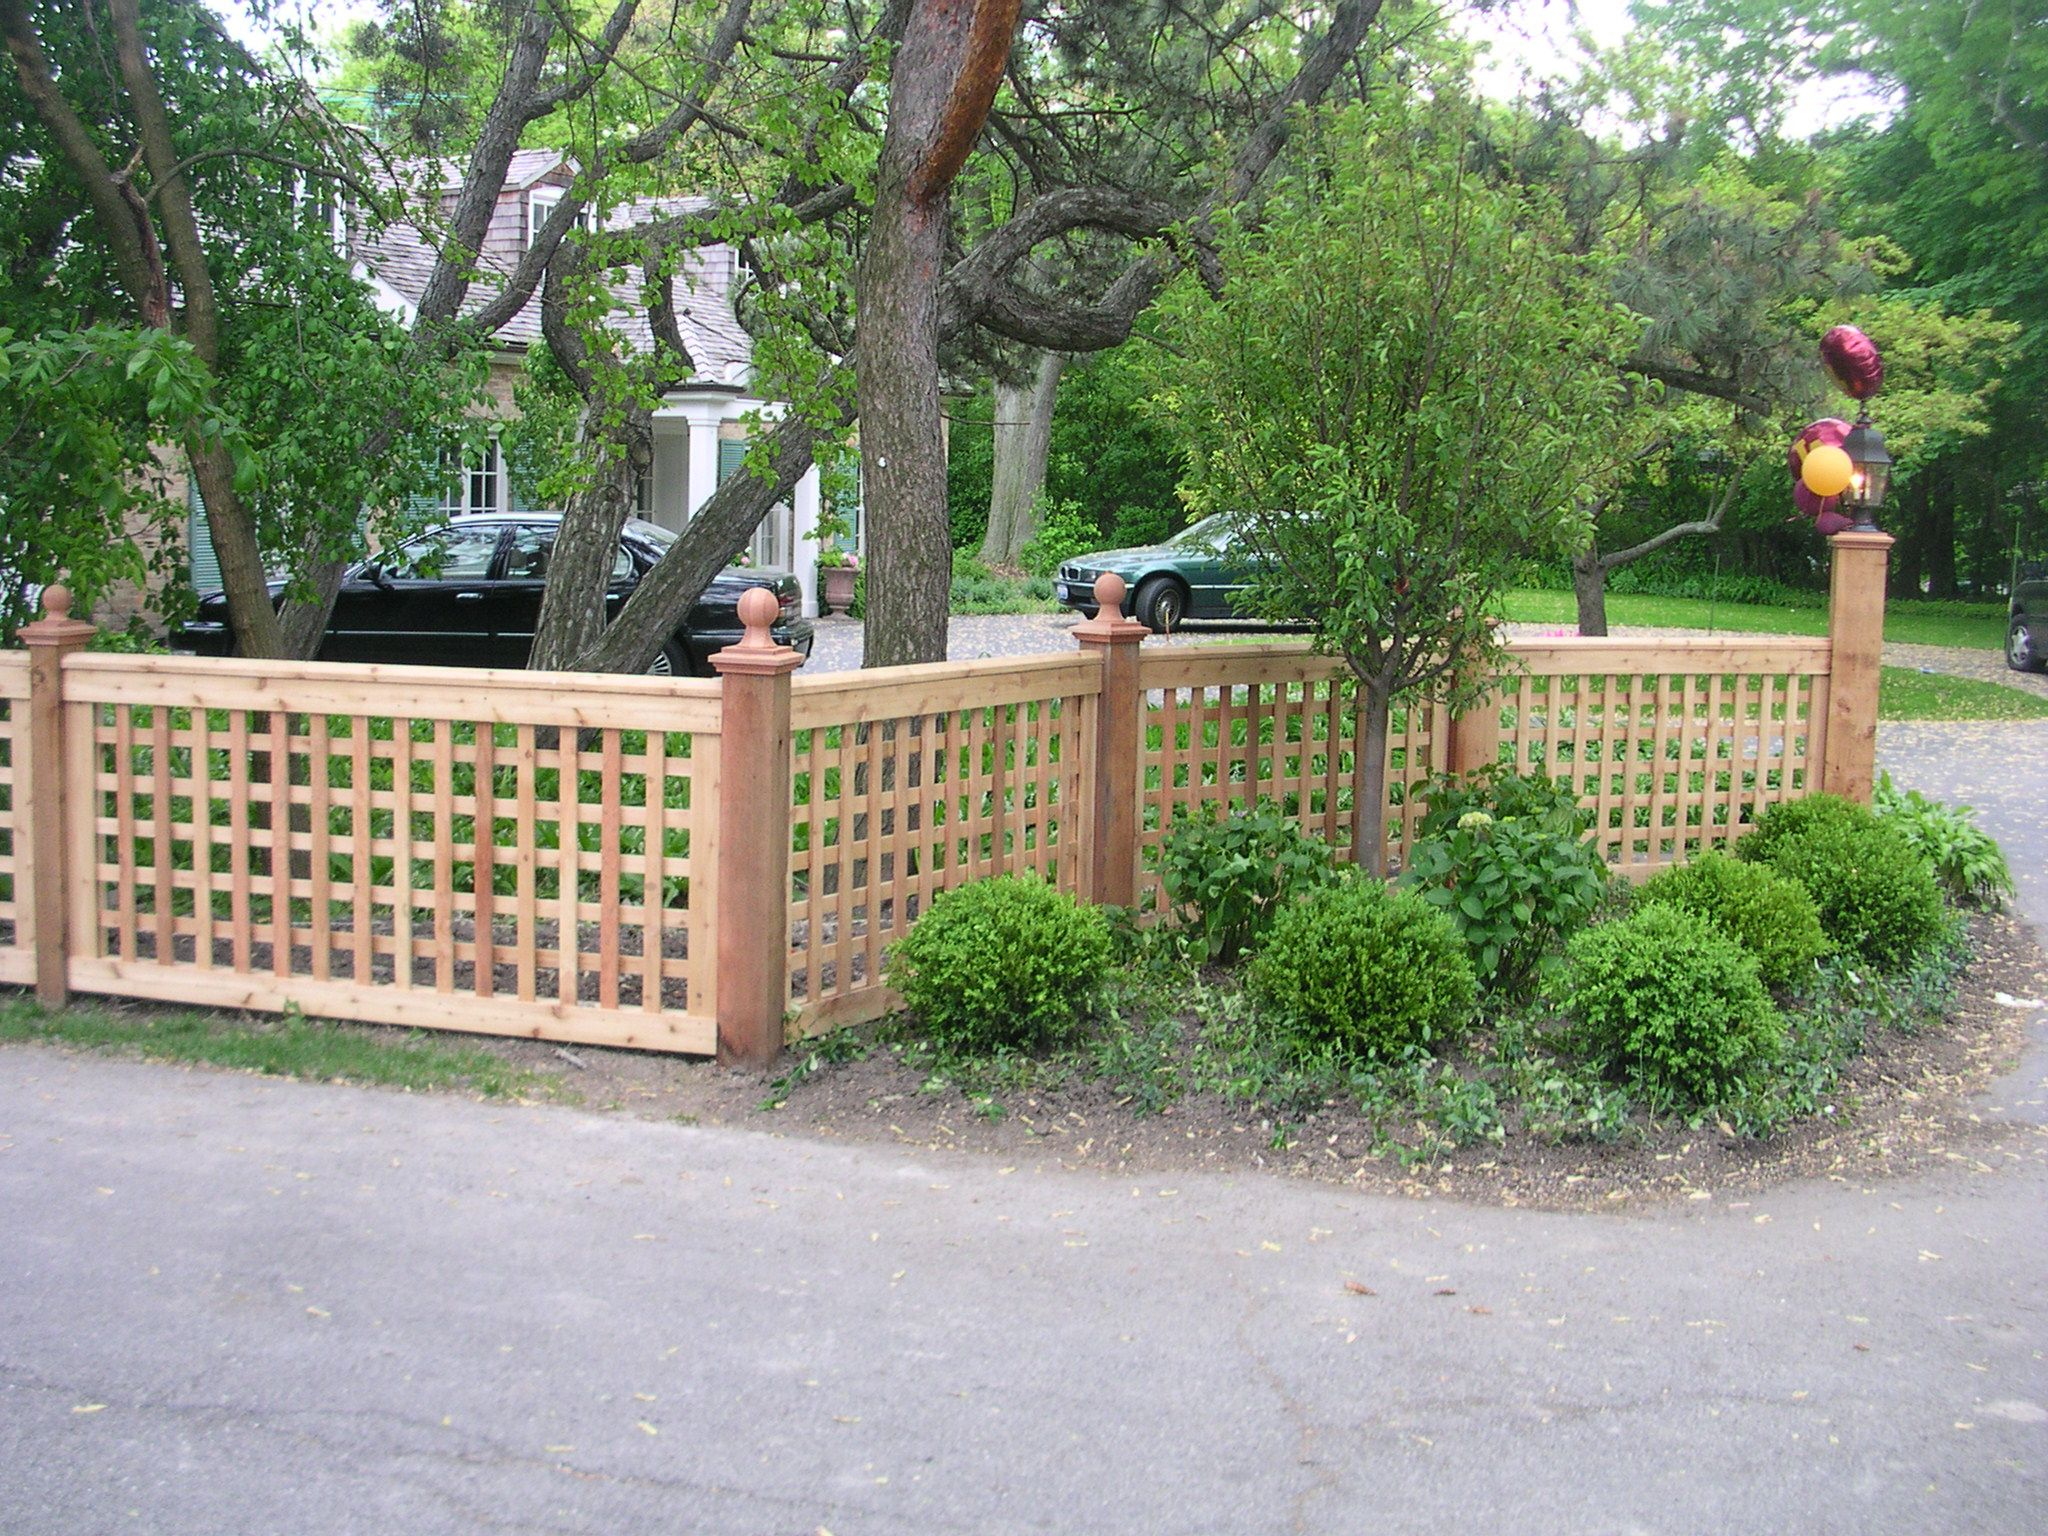 Painting of Select Lattice Fence Designs Based on Your Style